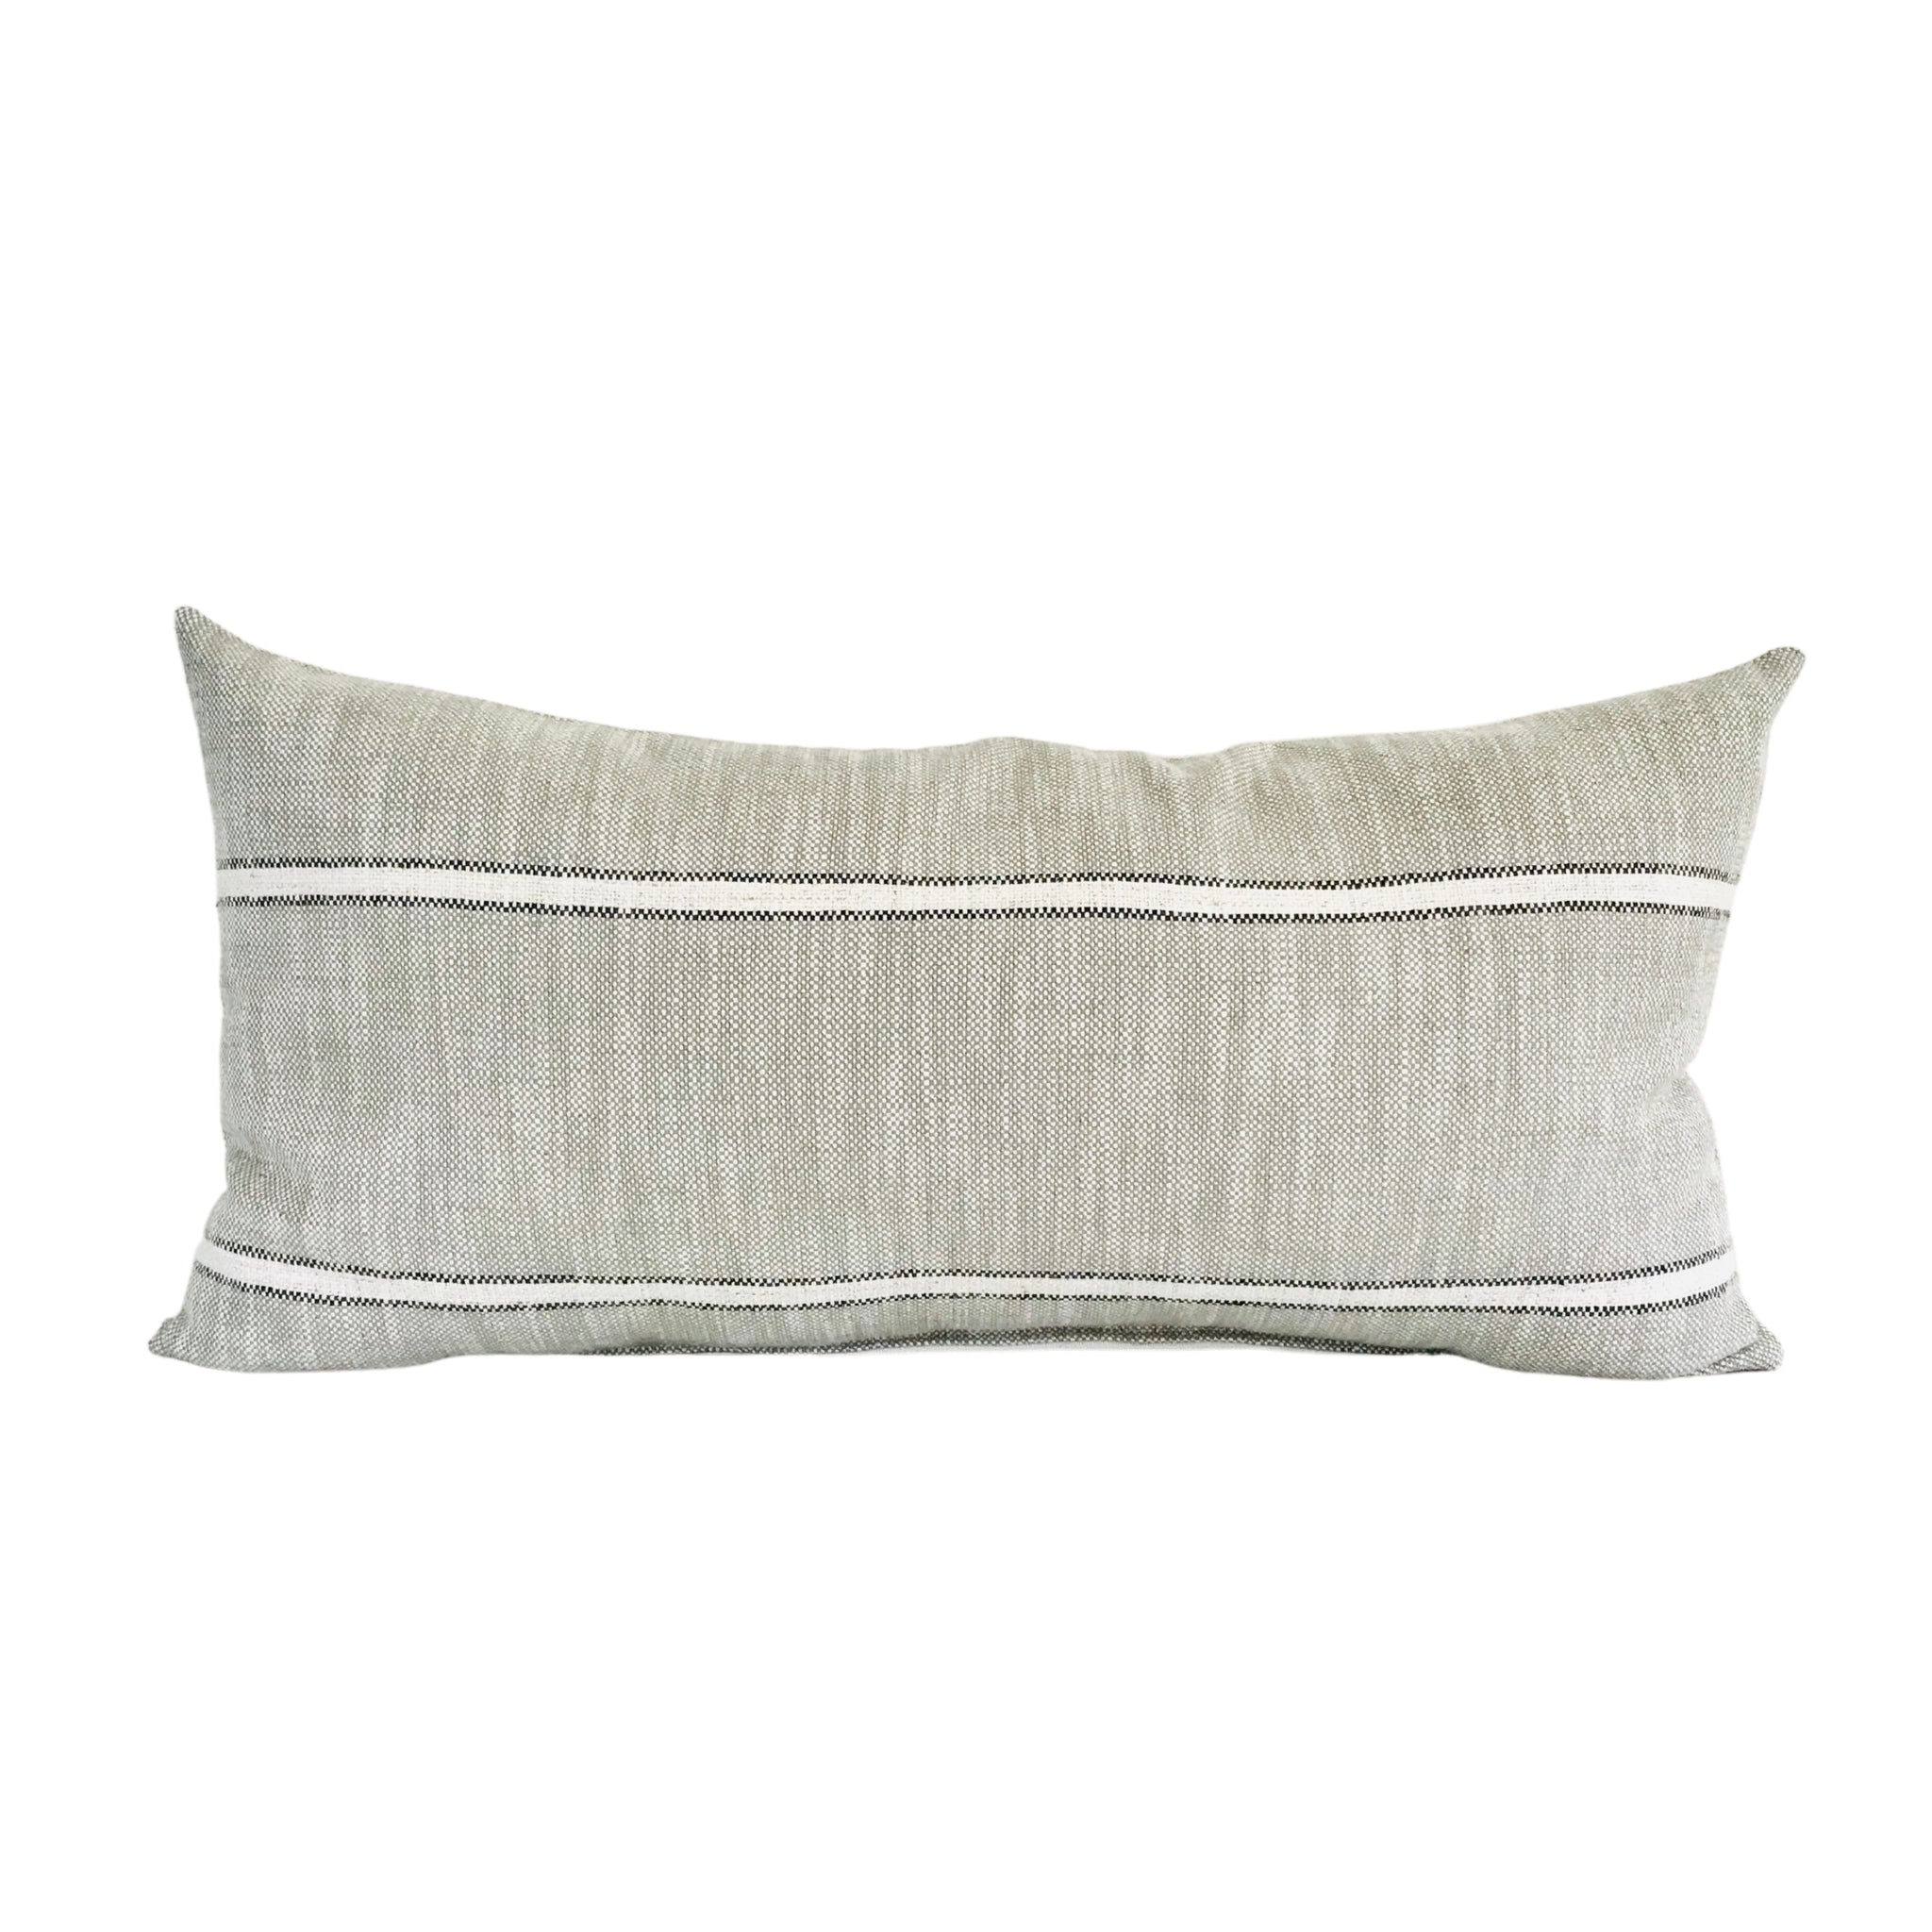 Decorative Lumbar Pillow Cover, Moody Pillow Covers, Designer Pillows, Decorative Pillow Covers, Hackner Home, Up Scale Pillows, Weathered Stripe Pillow, Gray Pillows, Moody Pillows, Moody Decor, Vintage Inspired Pillows, Striped Pillows,  Modern Farmhouse Pillows, Boho Farmhouse Pillows